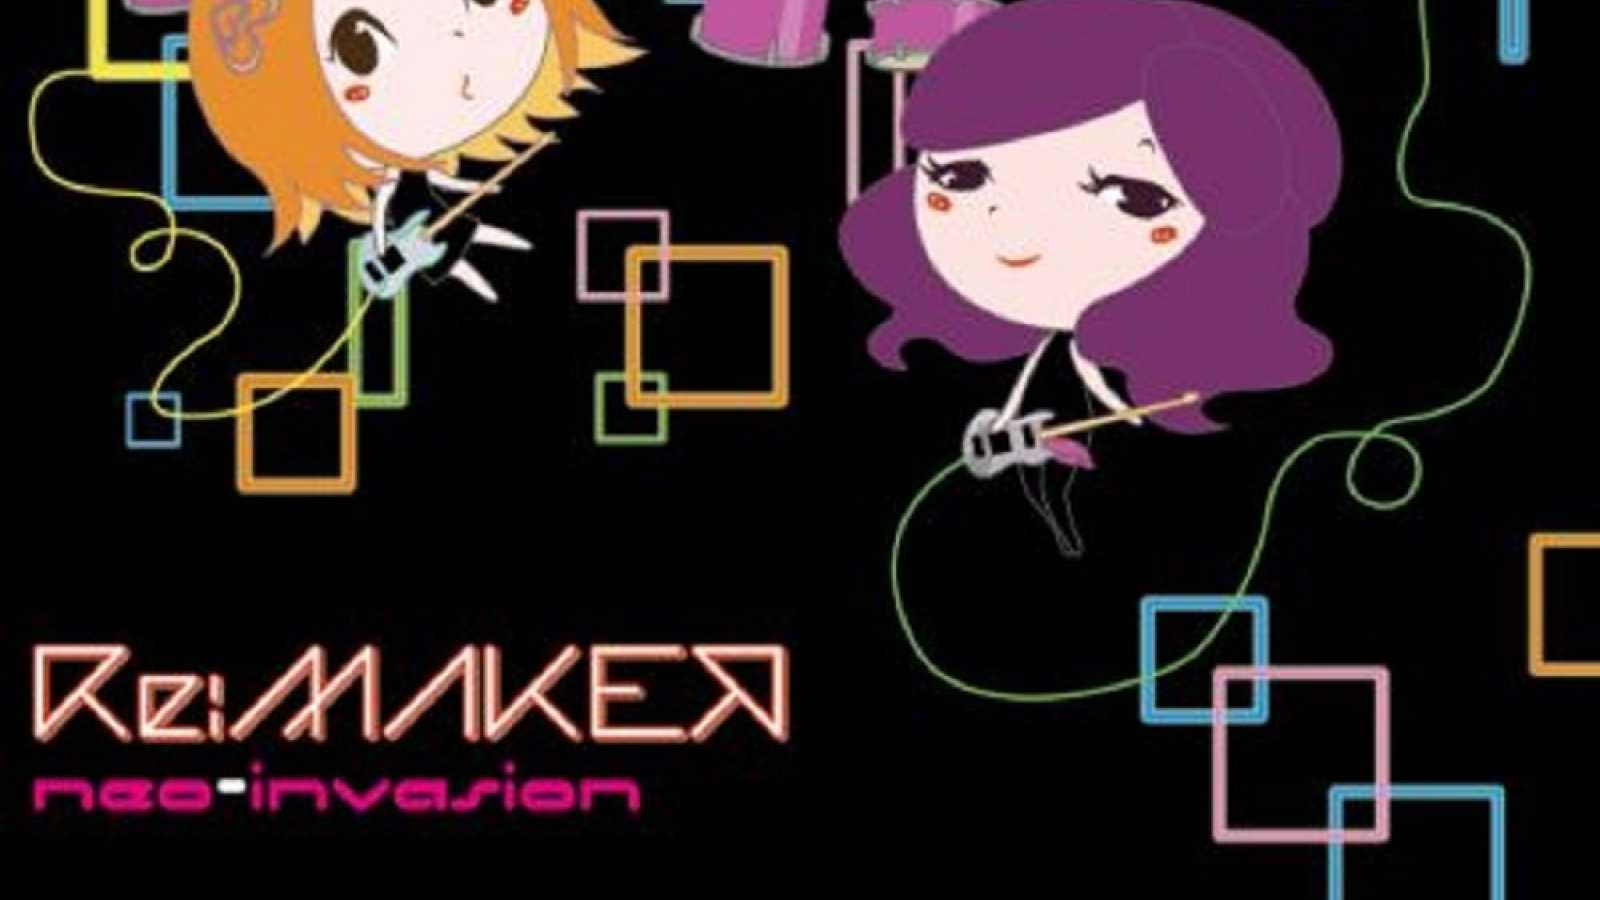 Re:MAKER - neo-invasion © Octaviagrace. All rights reserved.